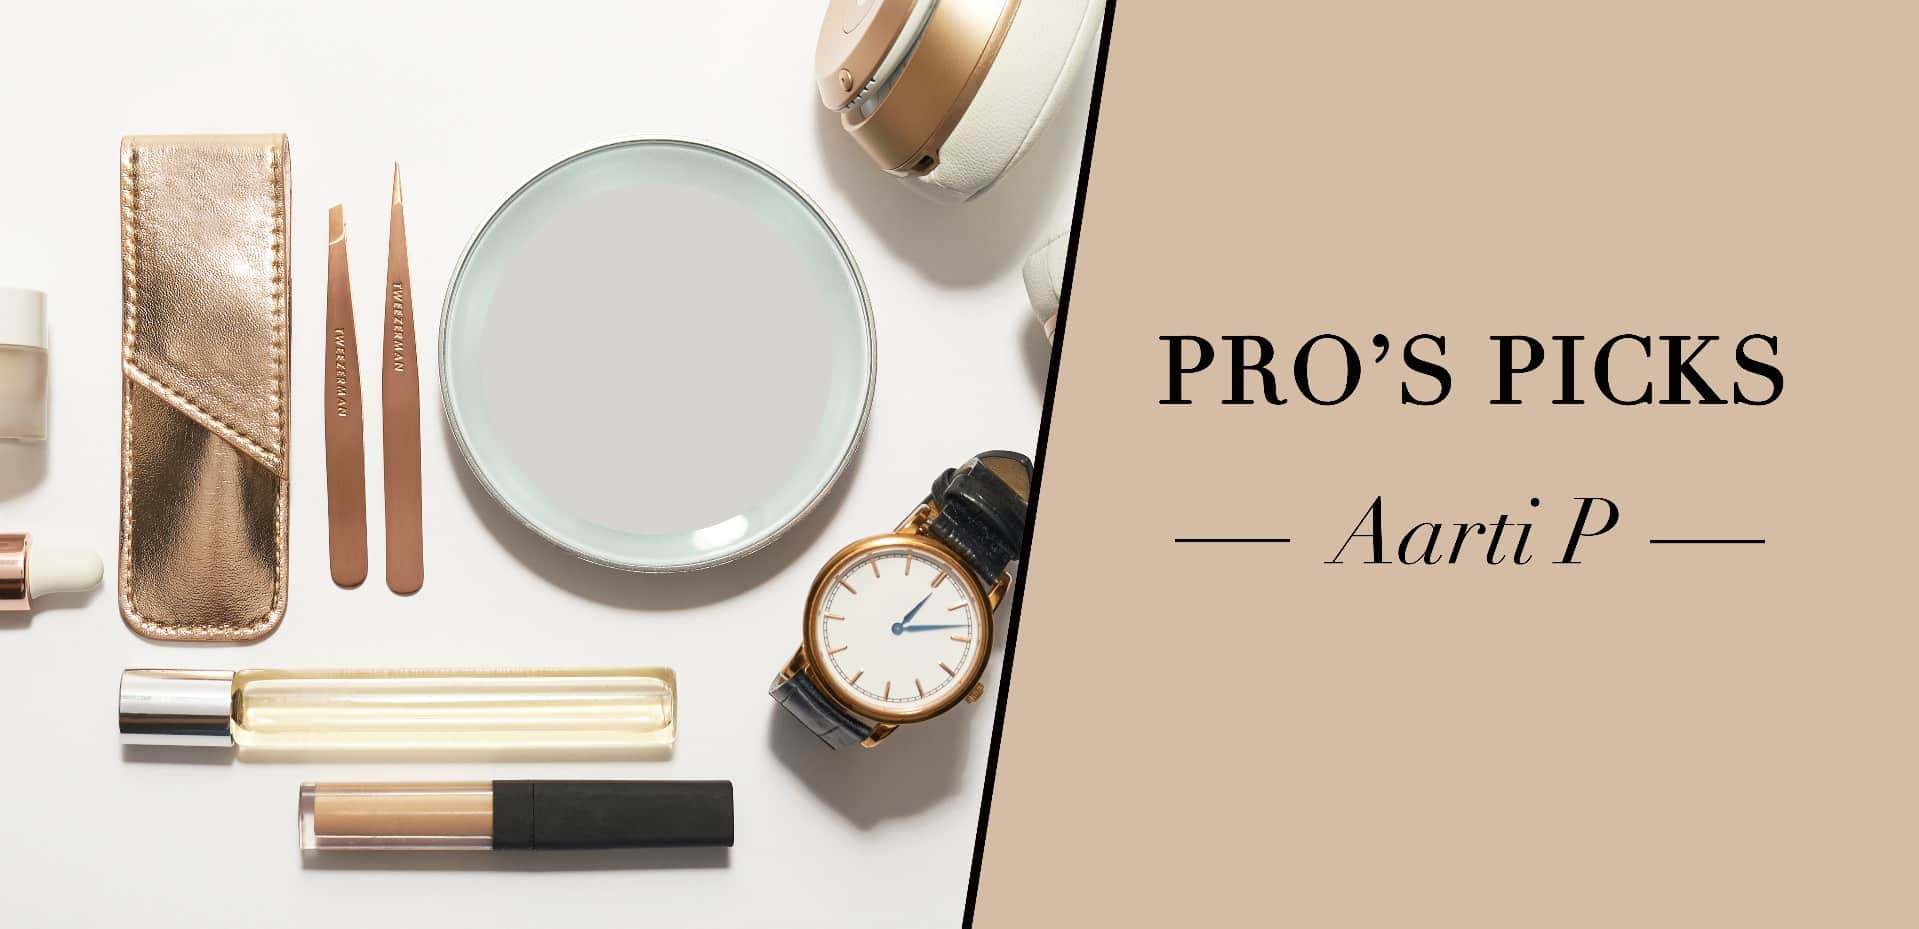 Pro's Picks - Makeup Artist Aarti P